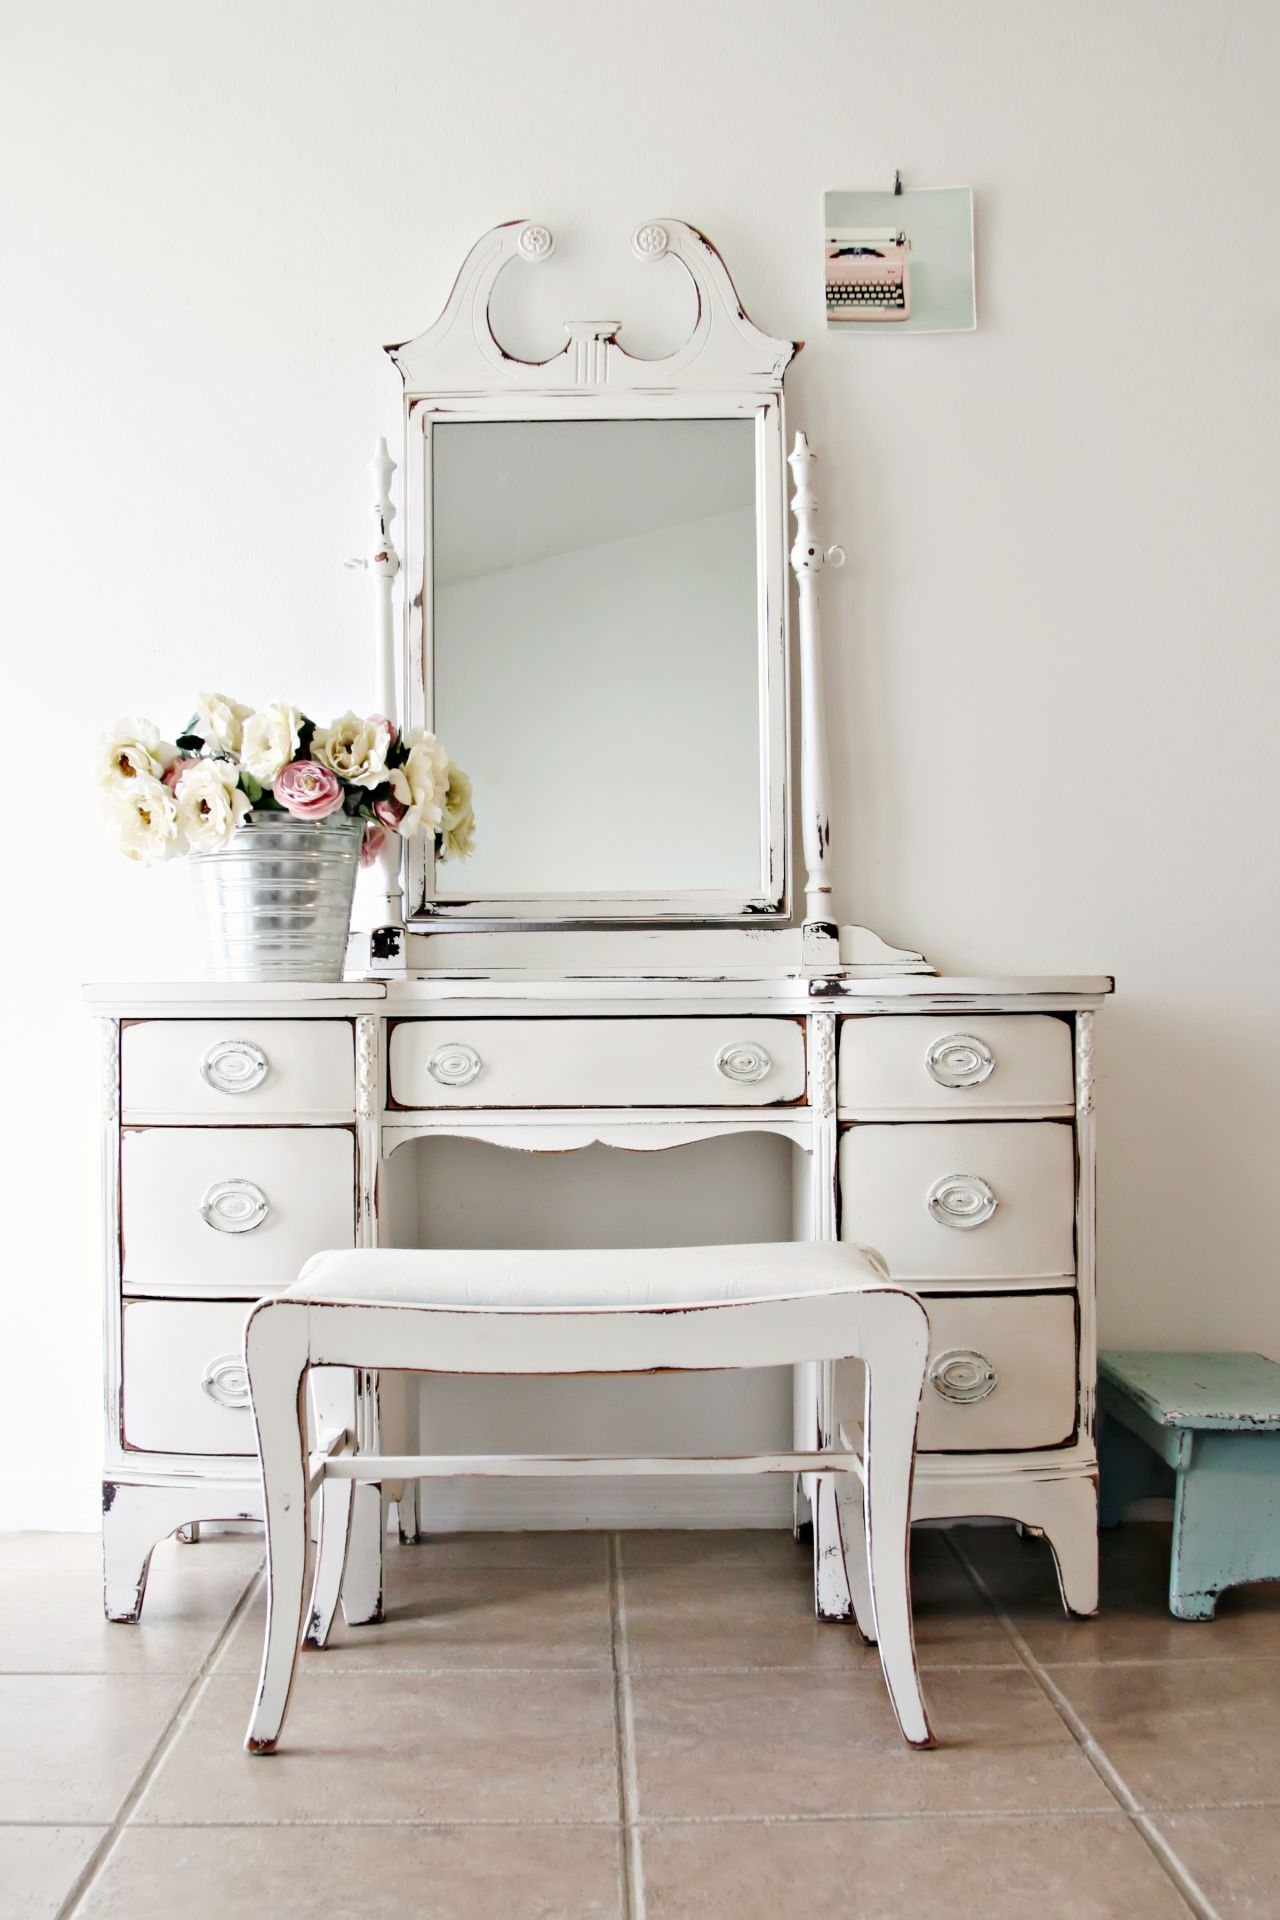 Shabby Chic Furniture – Well Aged And Well Loved